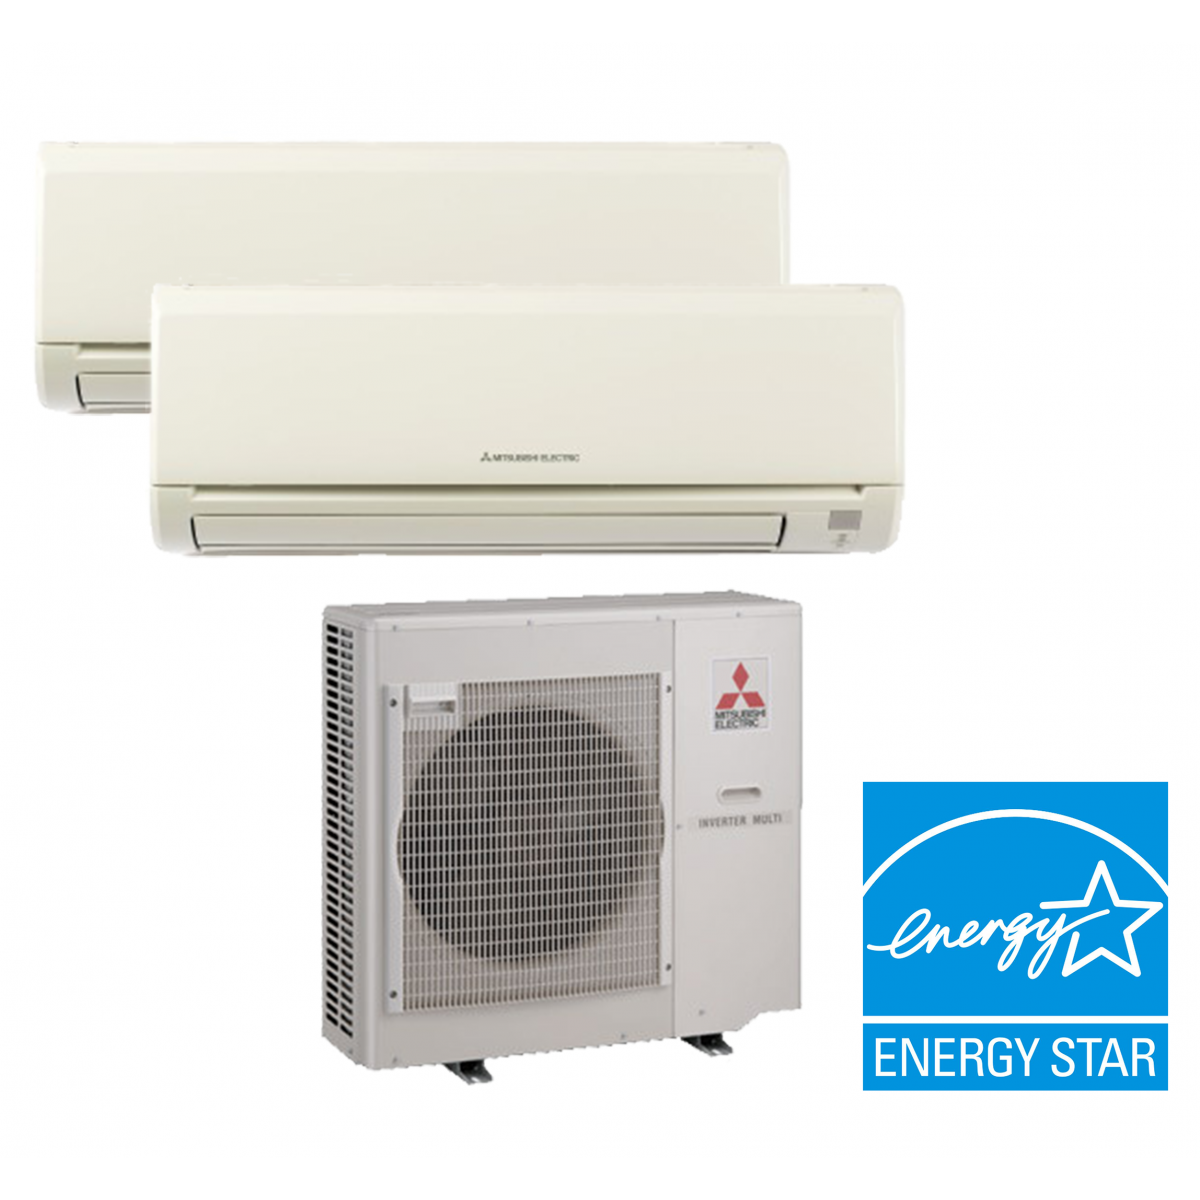 Mitsubishi mxz 2b20na 2 zone heat pump with two 2 9 000 Ductless ac